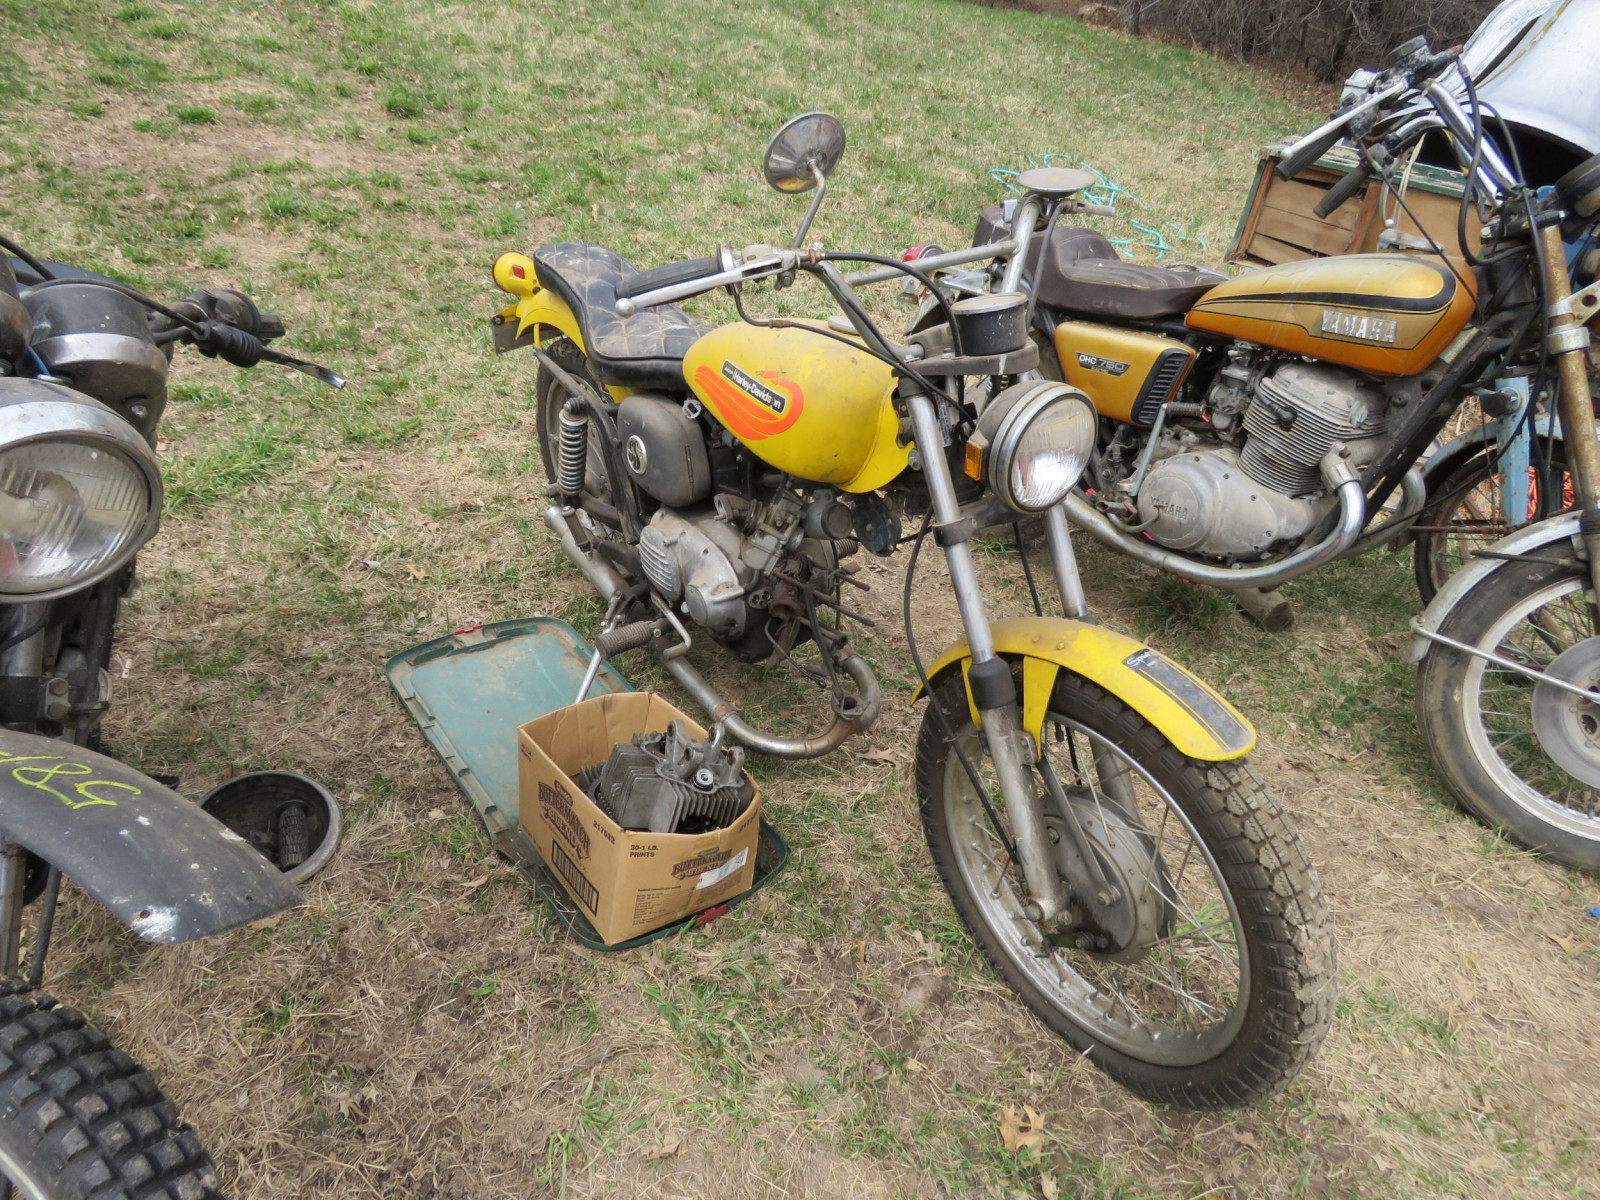 1971 Harley Davidson-AMF H2 Sprint GS350 Motorcycle for Project - Image 2